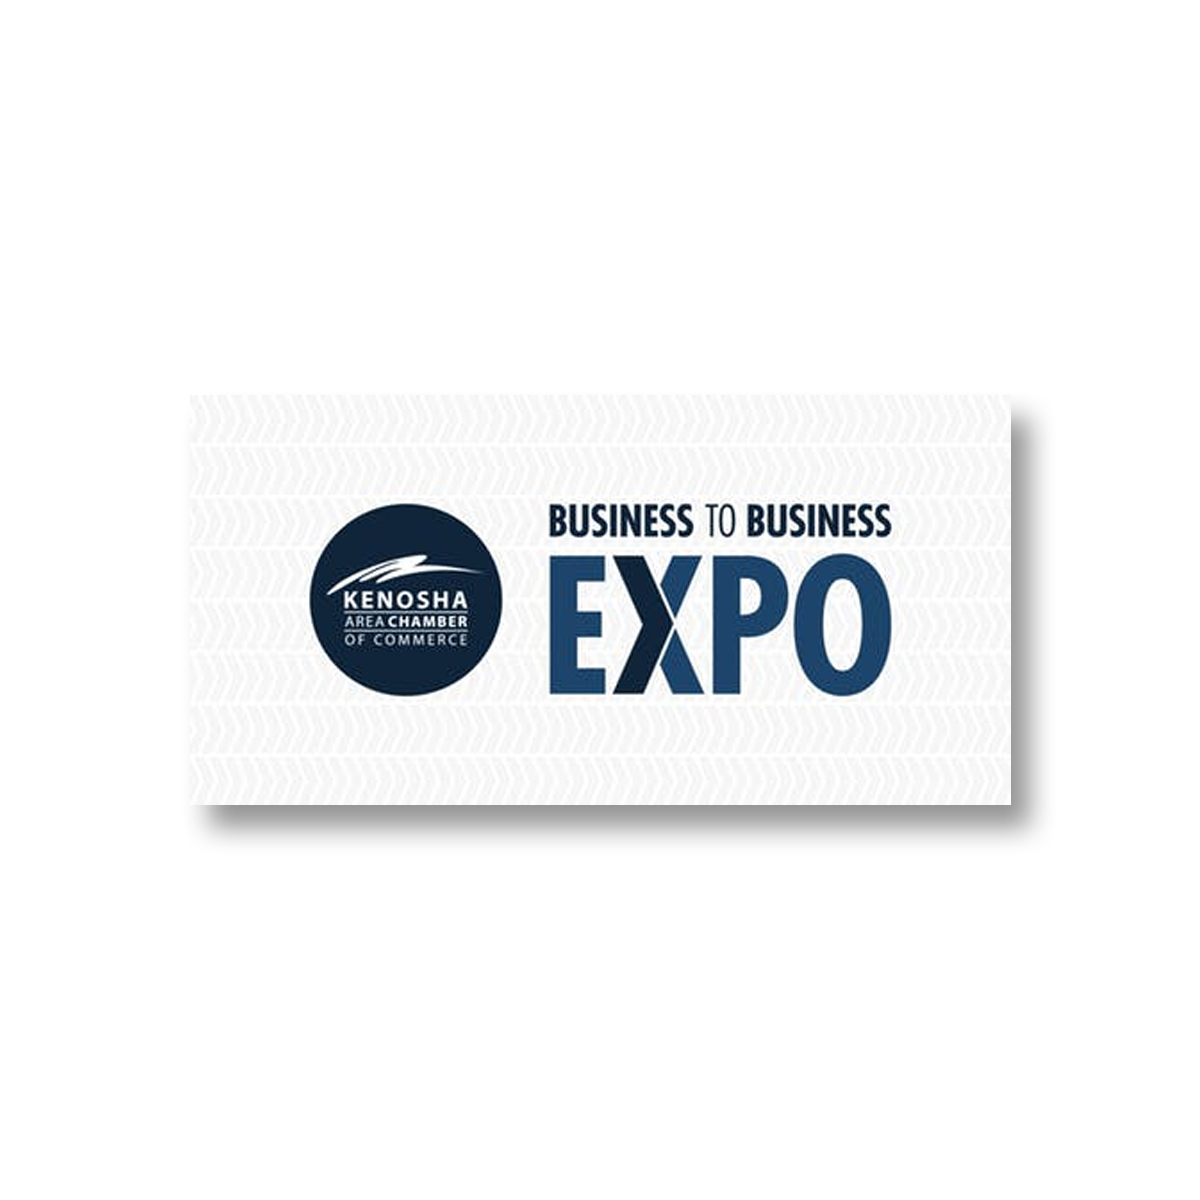 Kenosha Exp Commercial Branded Event Photography